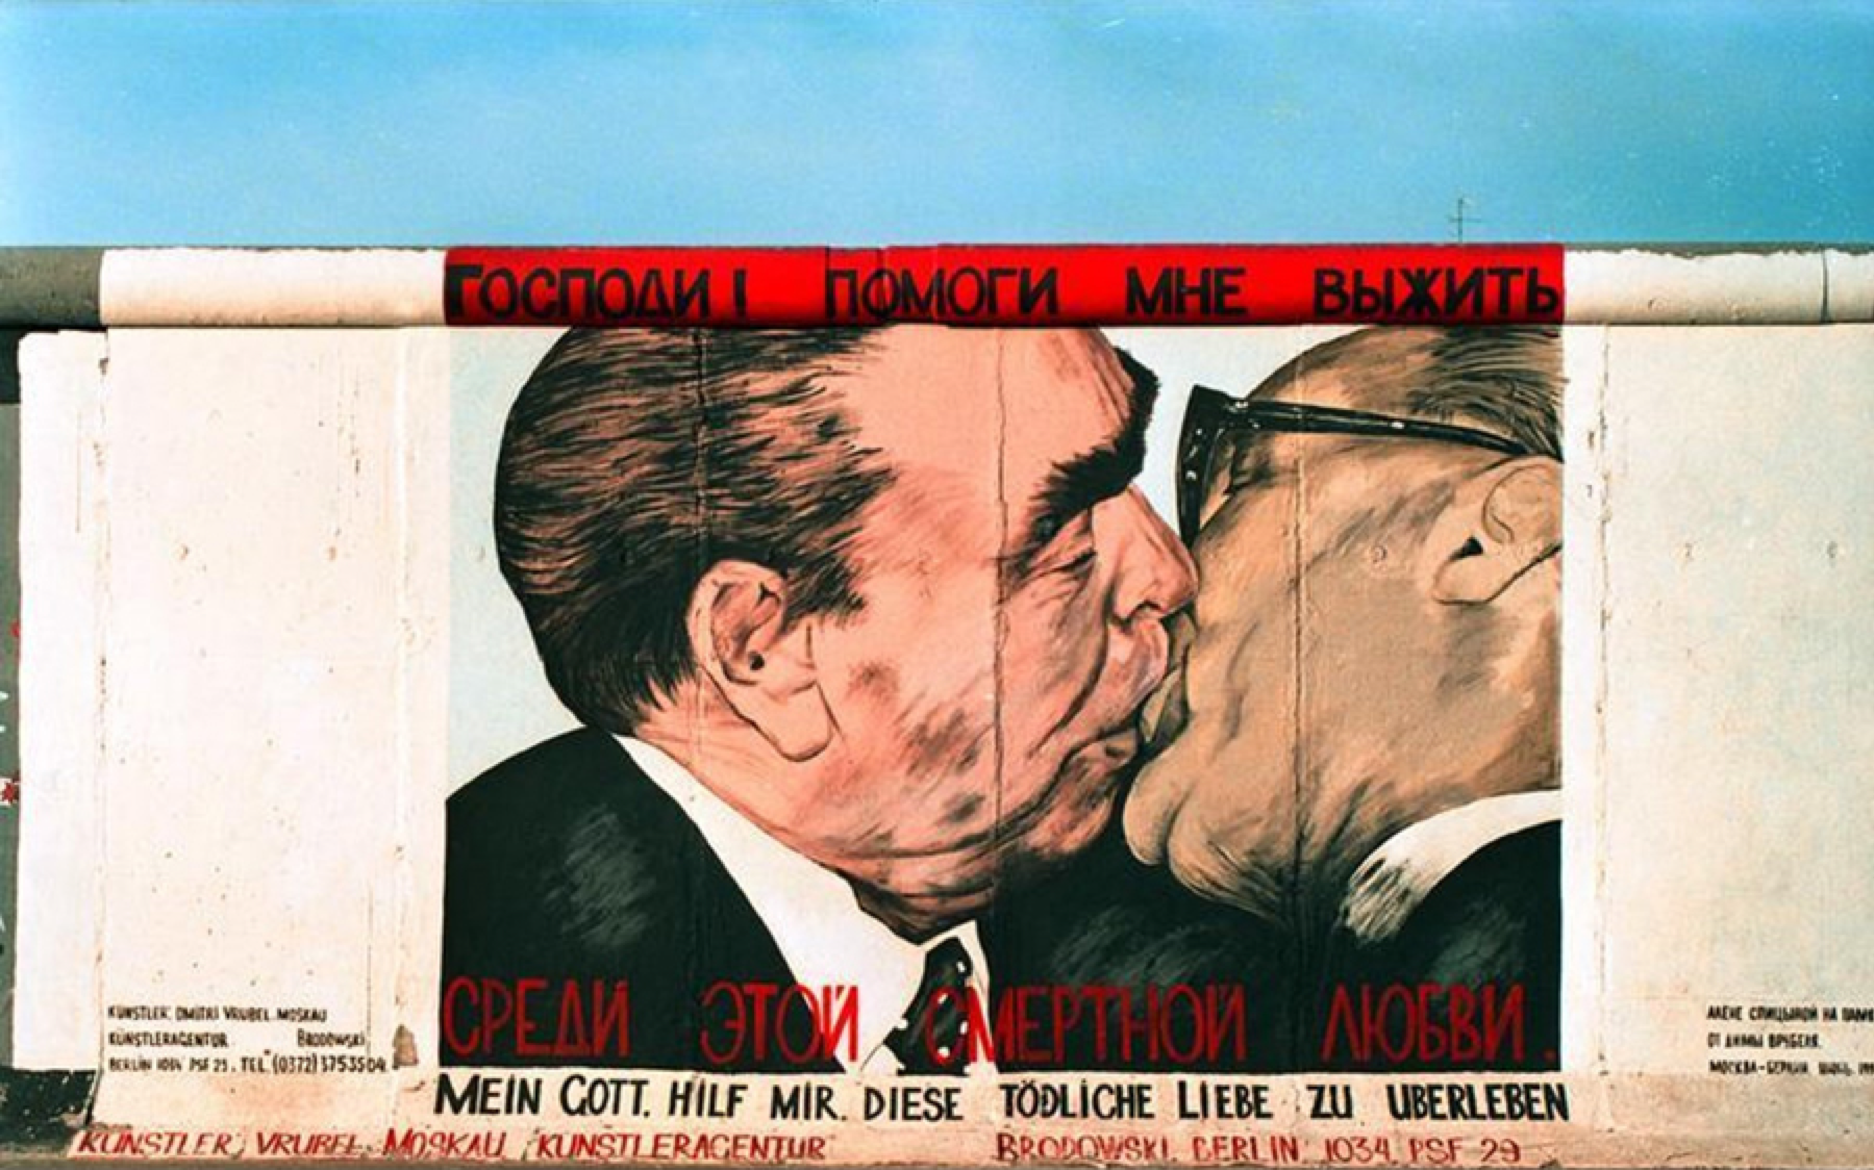 Dmitri Vrubel, My God, Help Me to Survive This Deadly Love  (1990). Image courtesy Joachim Thurn, Wikimedia Commons/ Frieze.